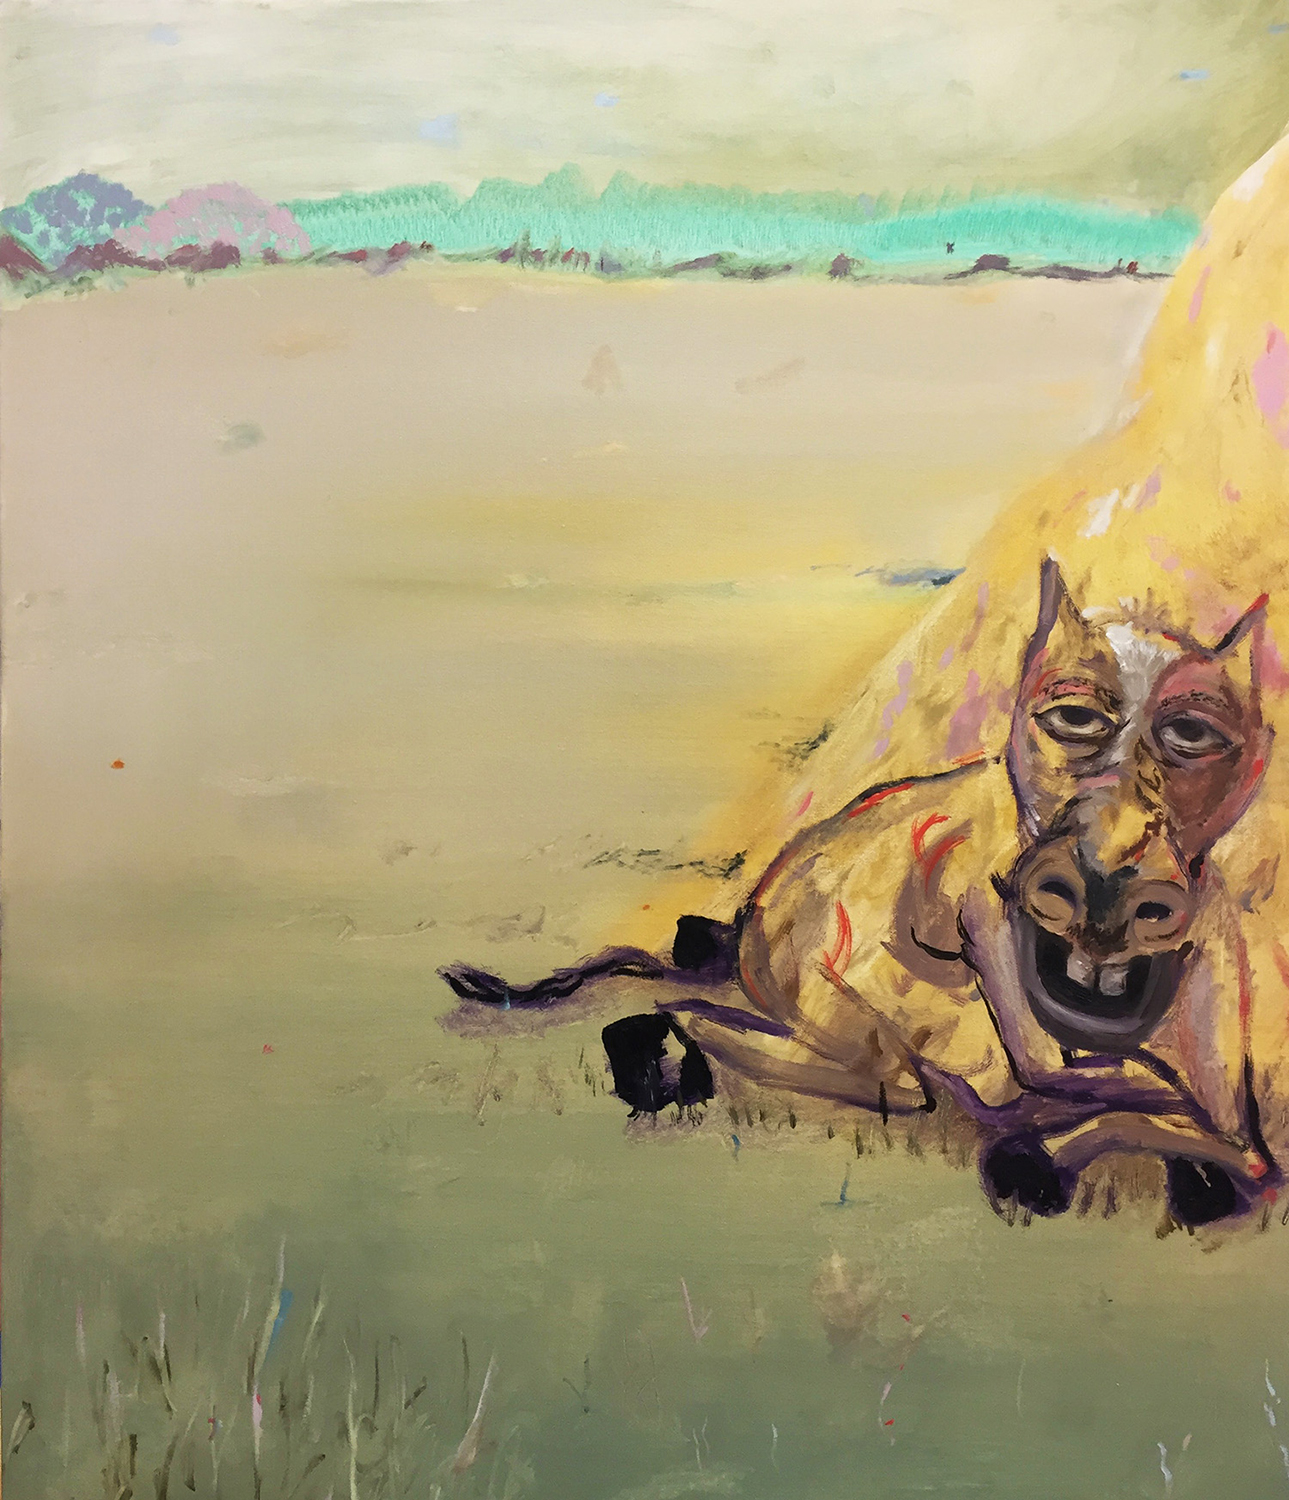 Horse and a Hay Pile, 2017. Oil on canvas, 24x36 inches.